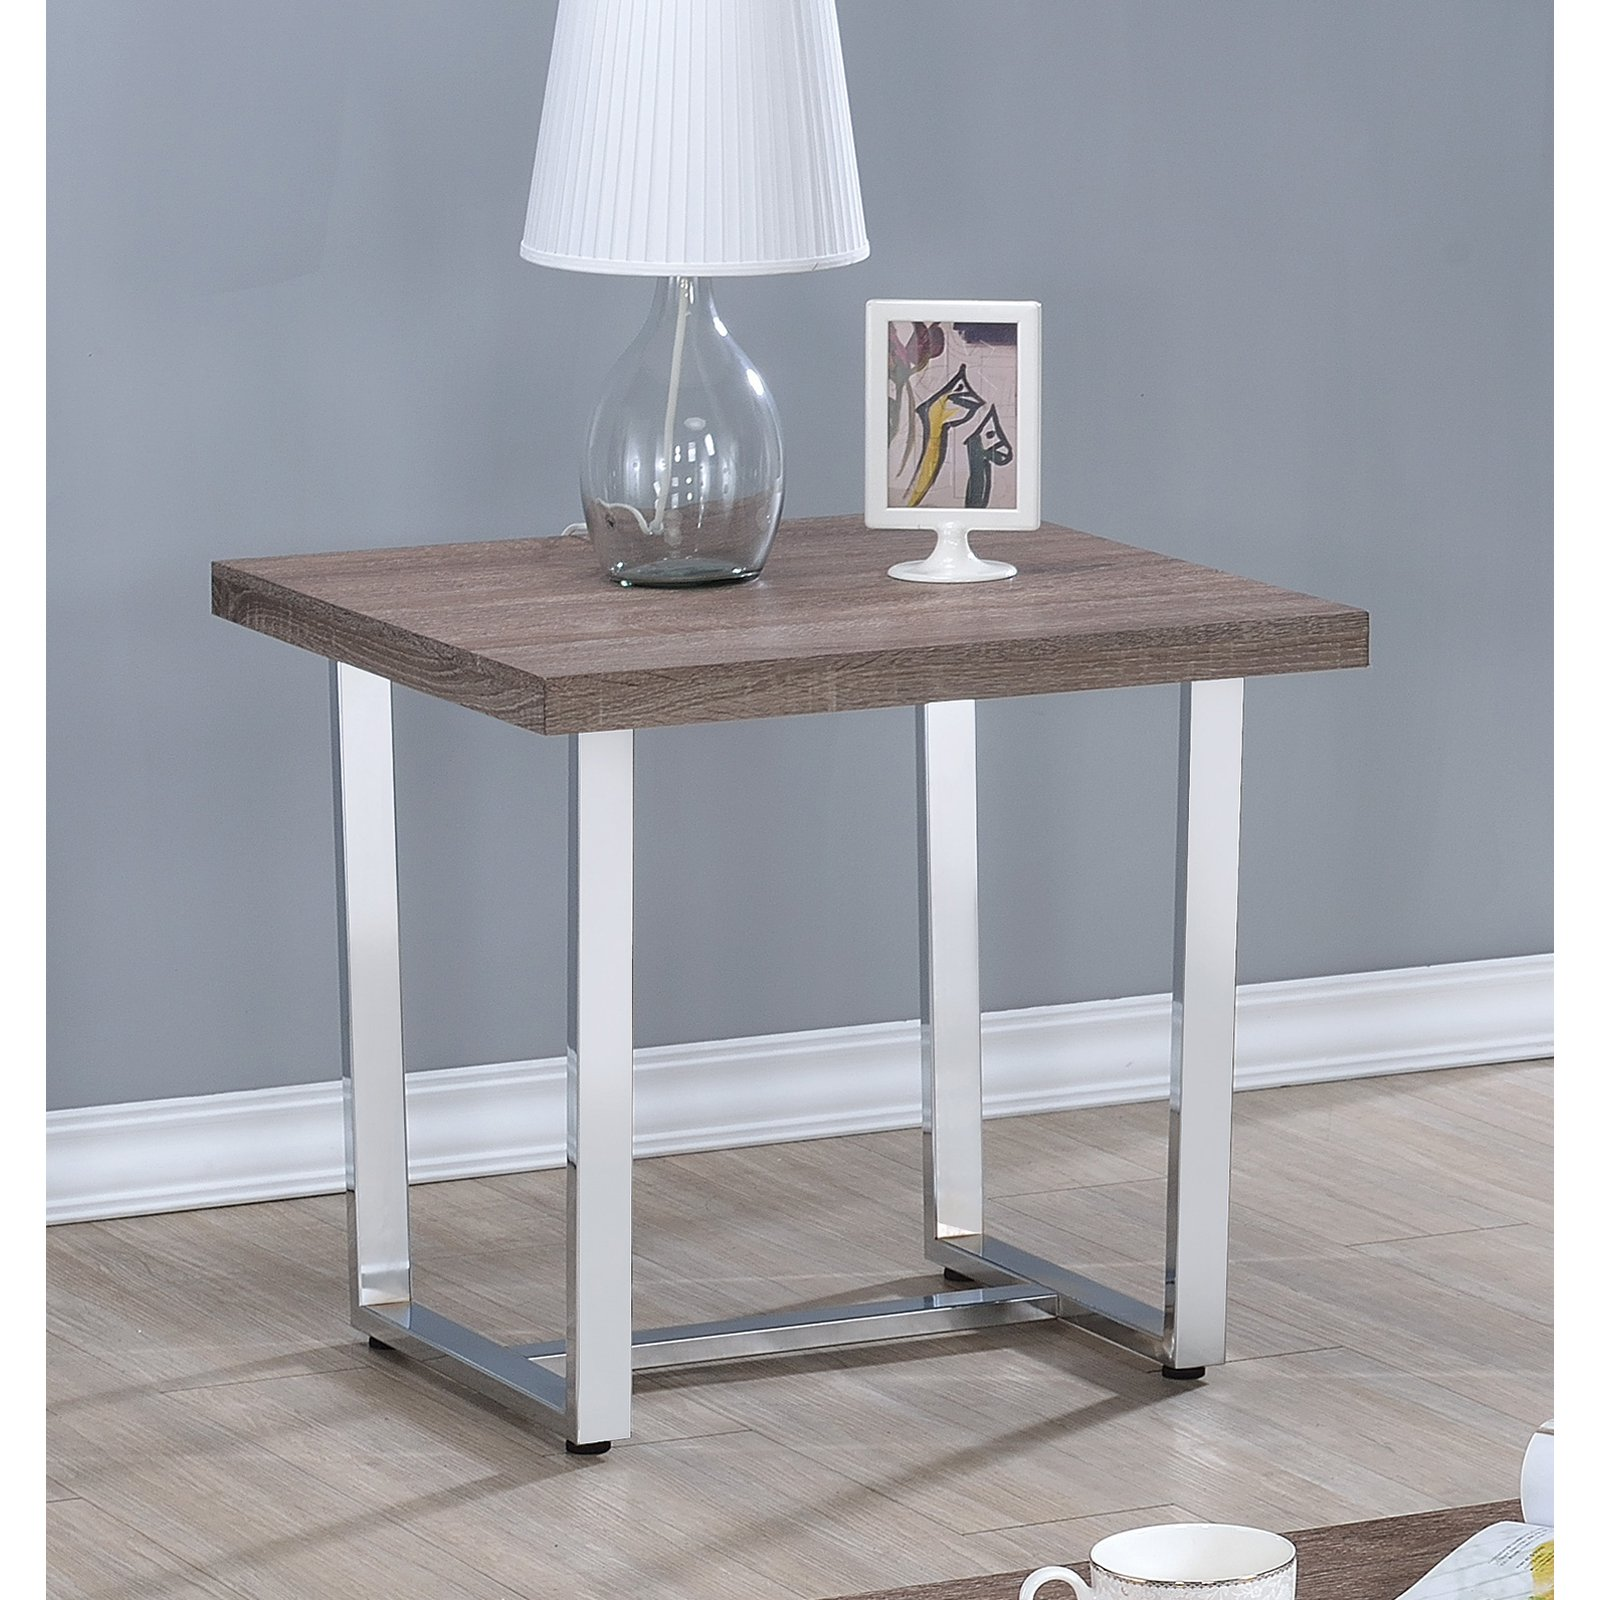 Coaster End Table, Weathered Taupe Finish